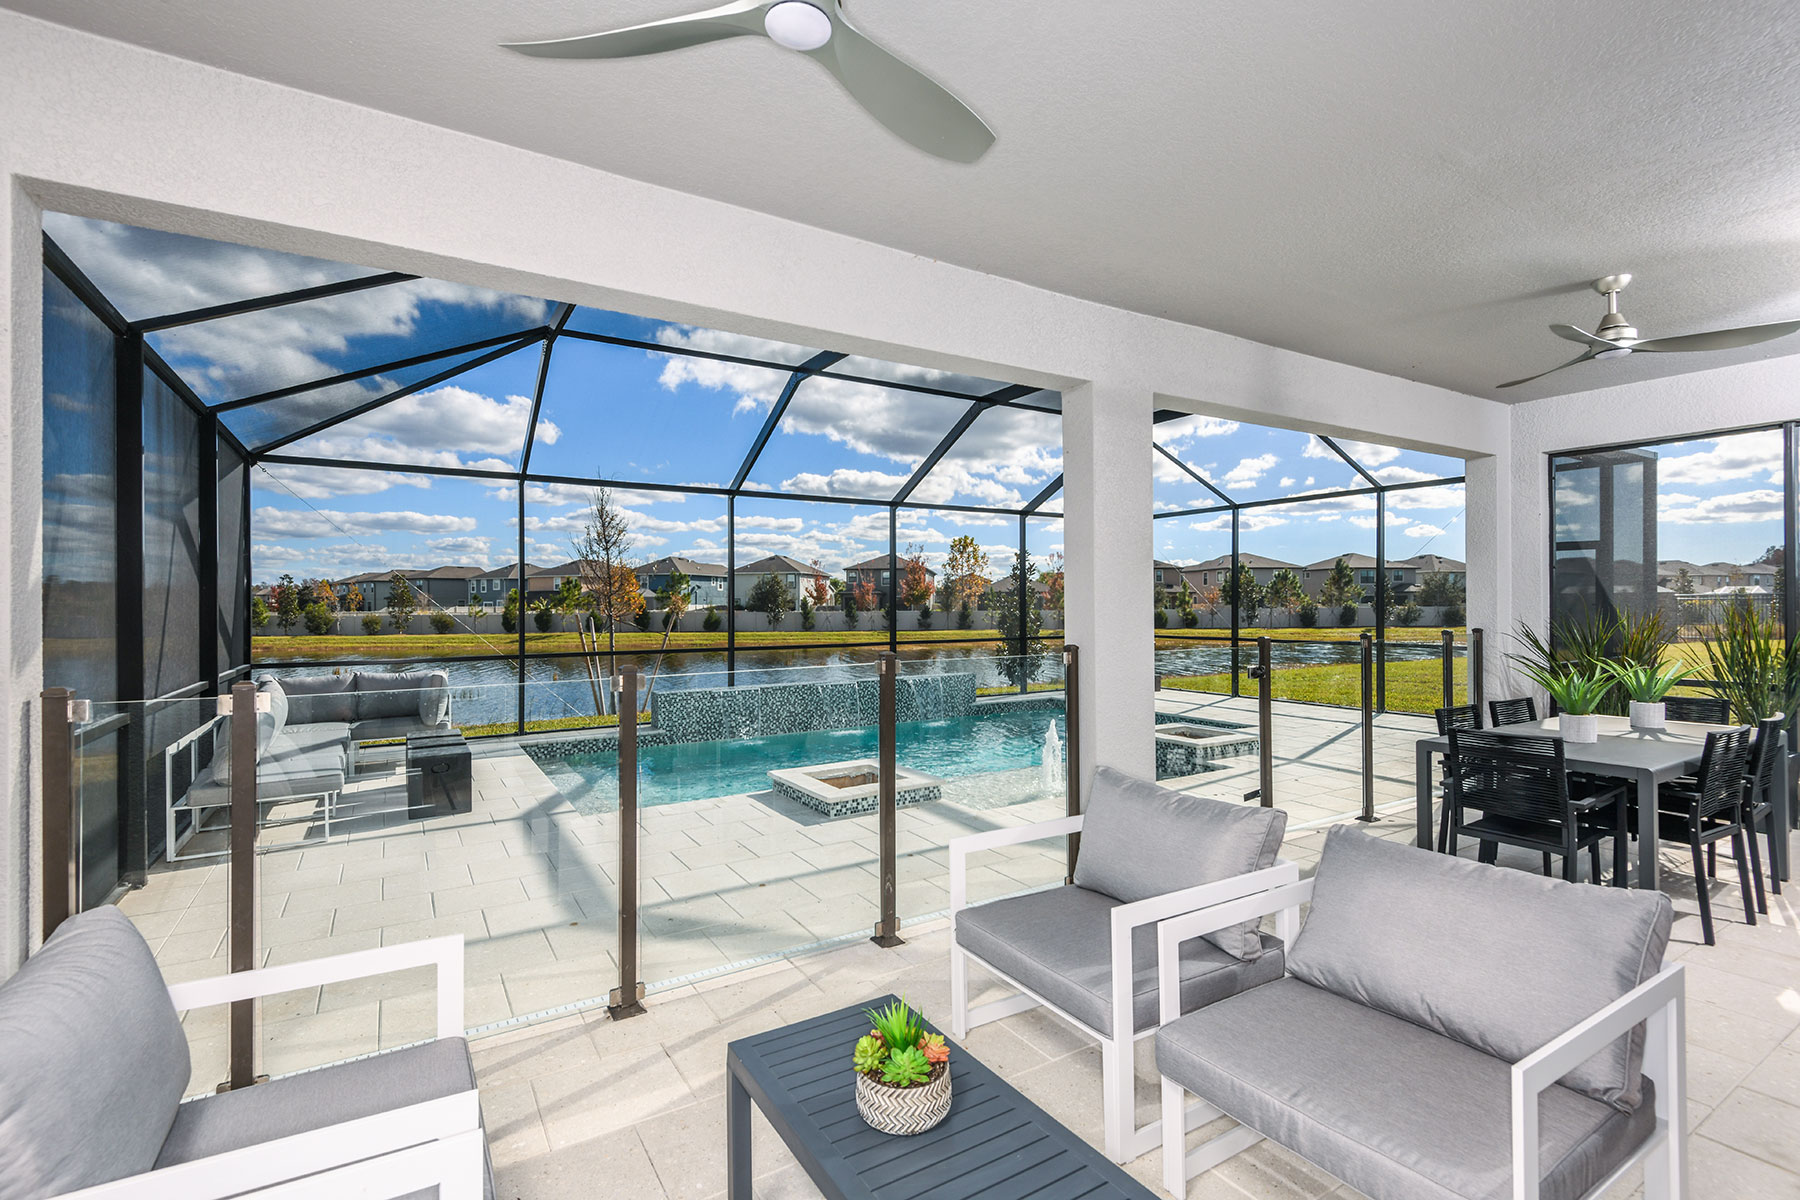 Myrtle Plan Patio at Parkview at Long Lake Ranch in Lutz Florida by Mattamy Homes